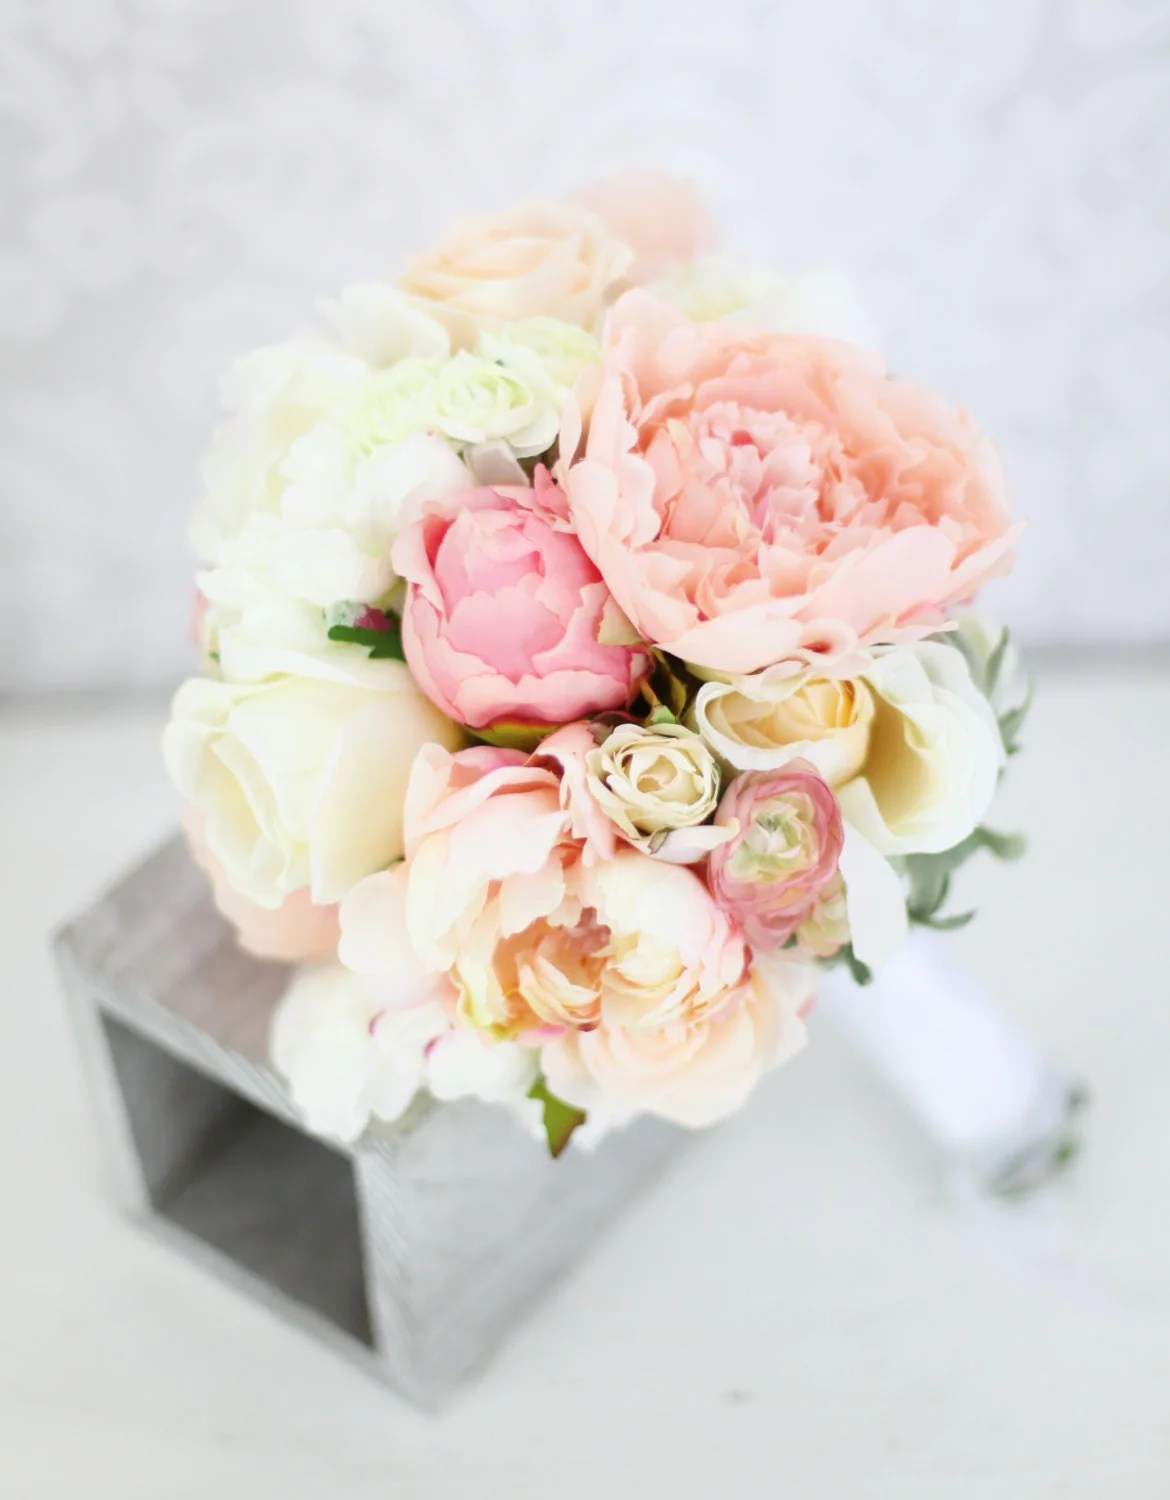 Peony Love Quote Wallpaper Silk Bride Bouquet Peony Flowers Pink Peach Cream By